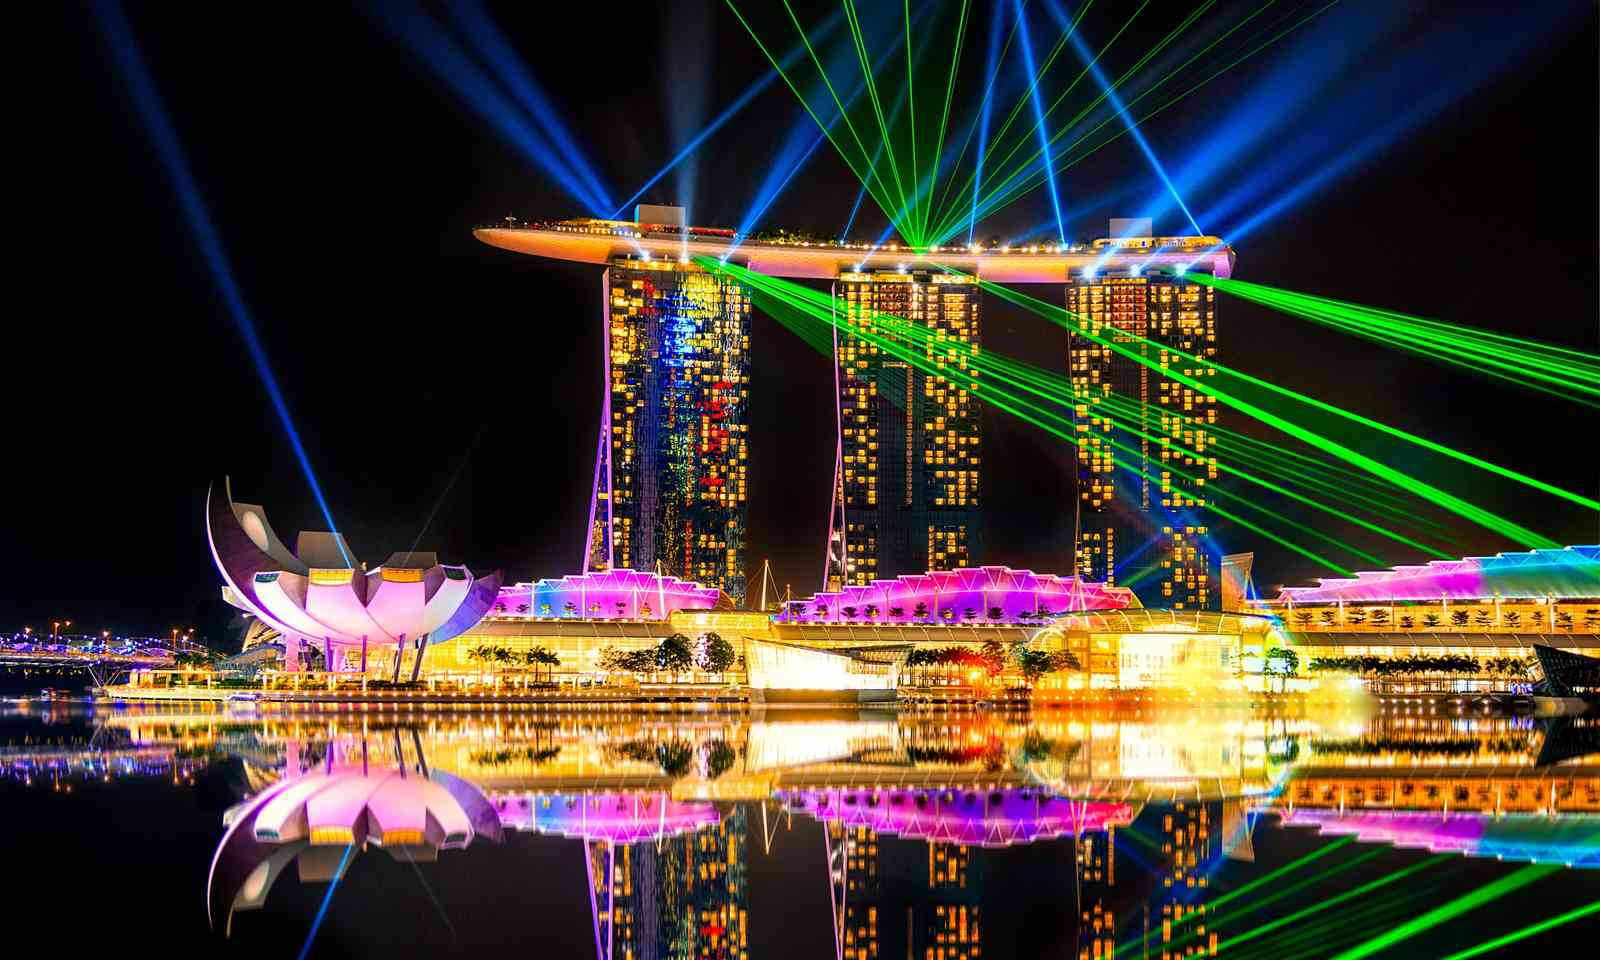 Laser show at the Marina Bay Sands (Dreamstime)